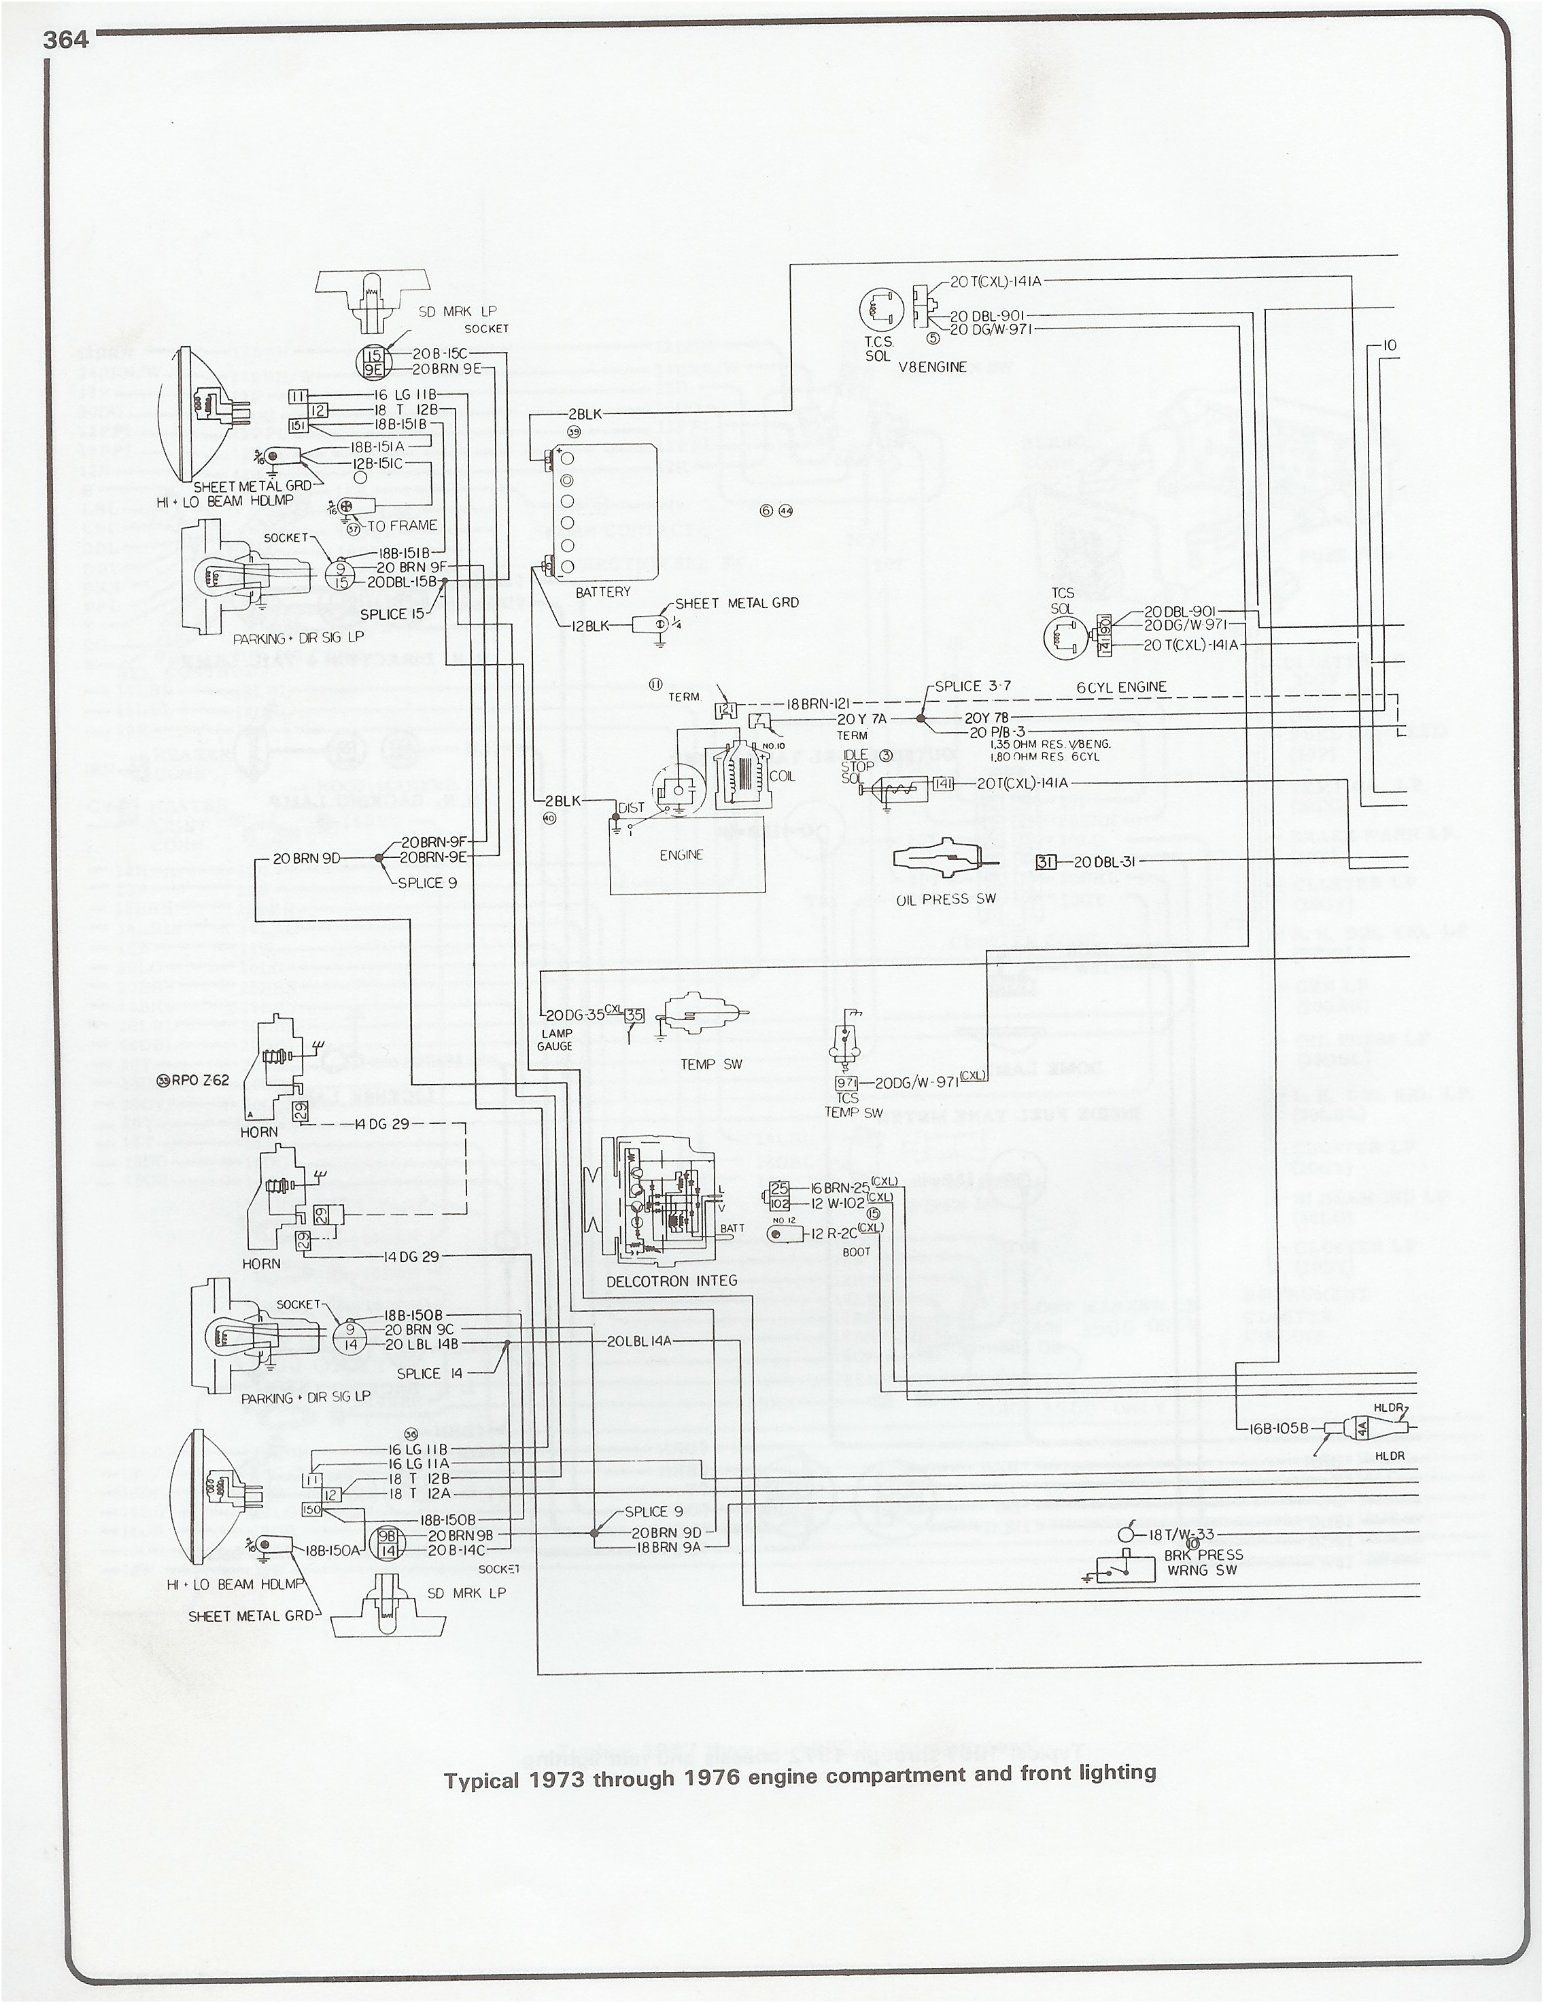 1970 chevelle wiring diagram with gauges